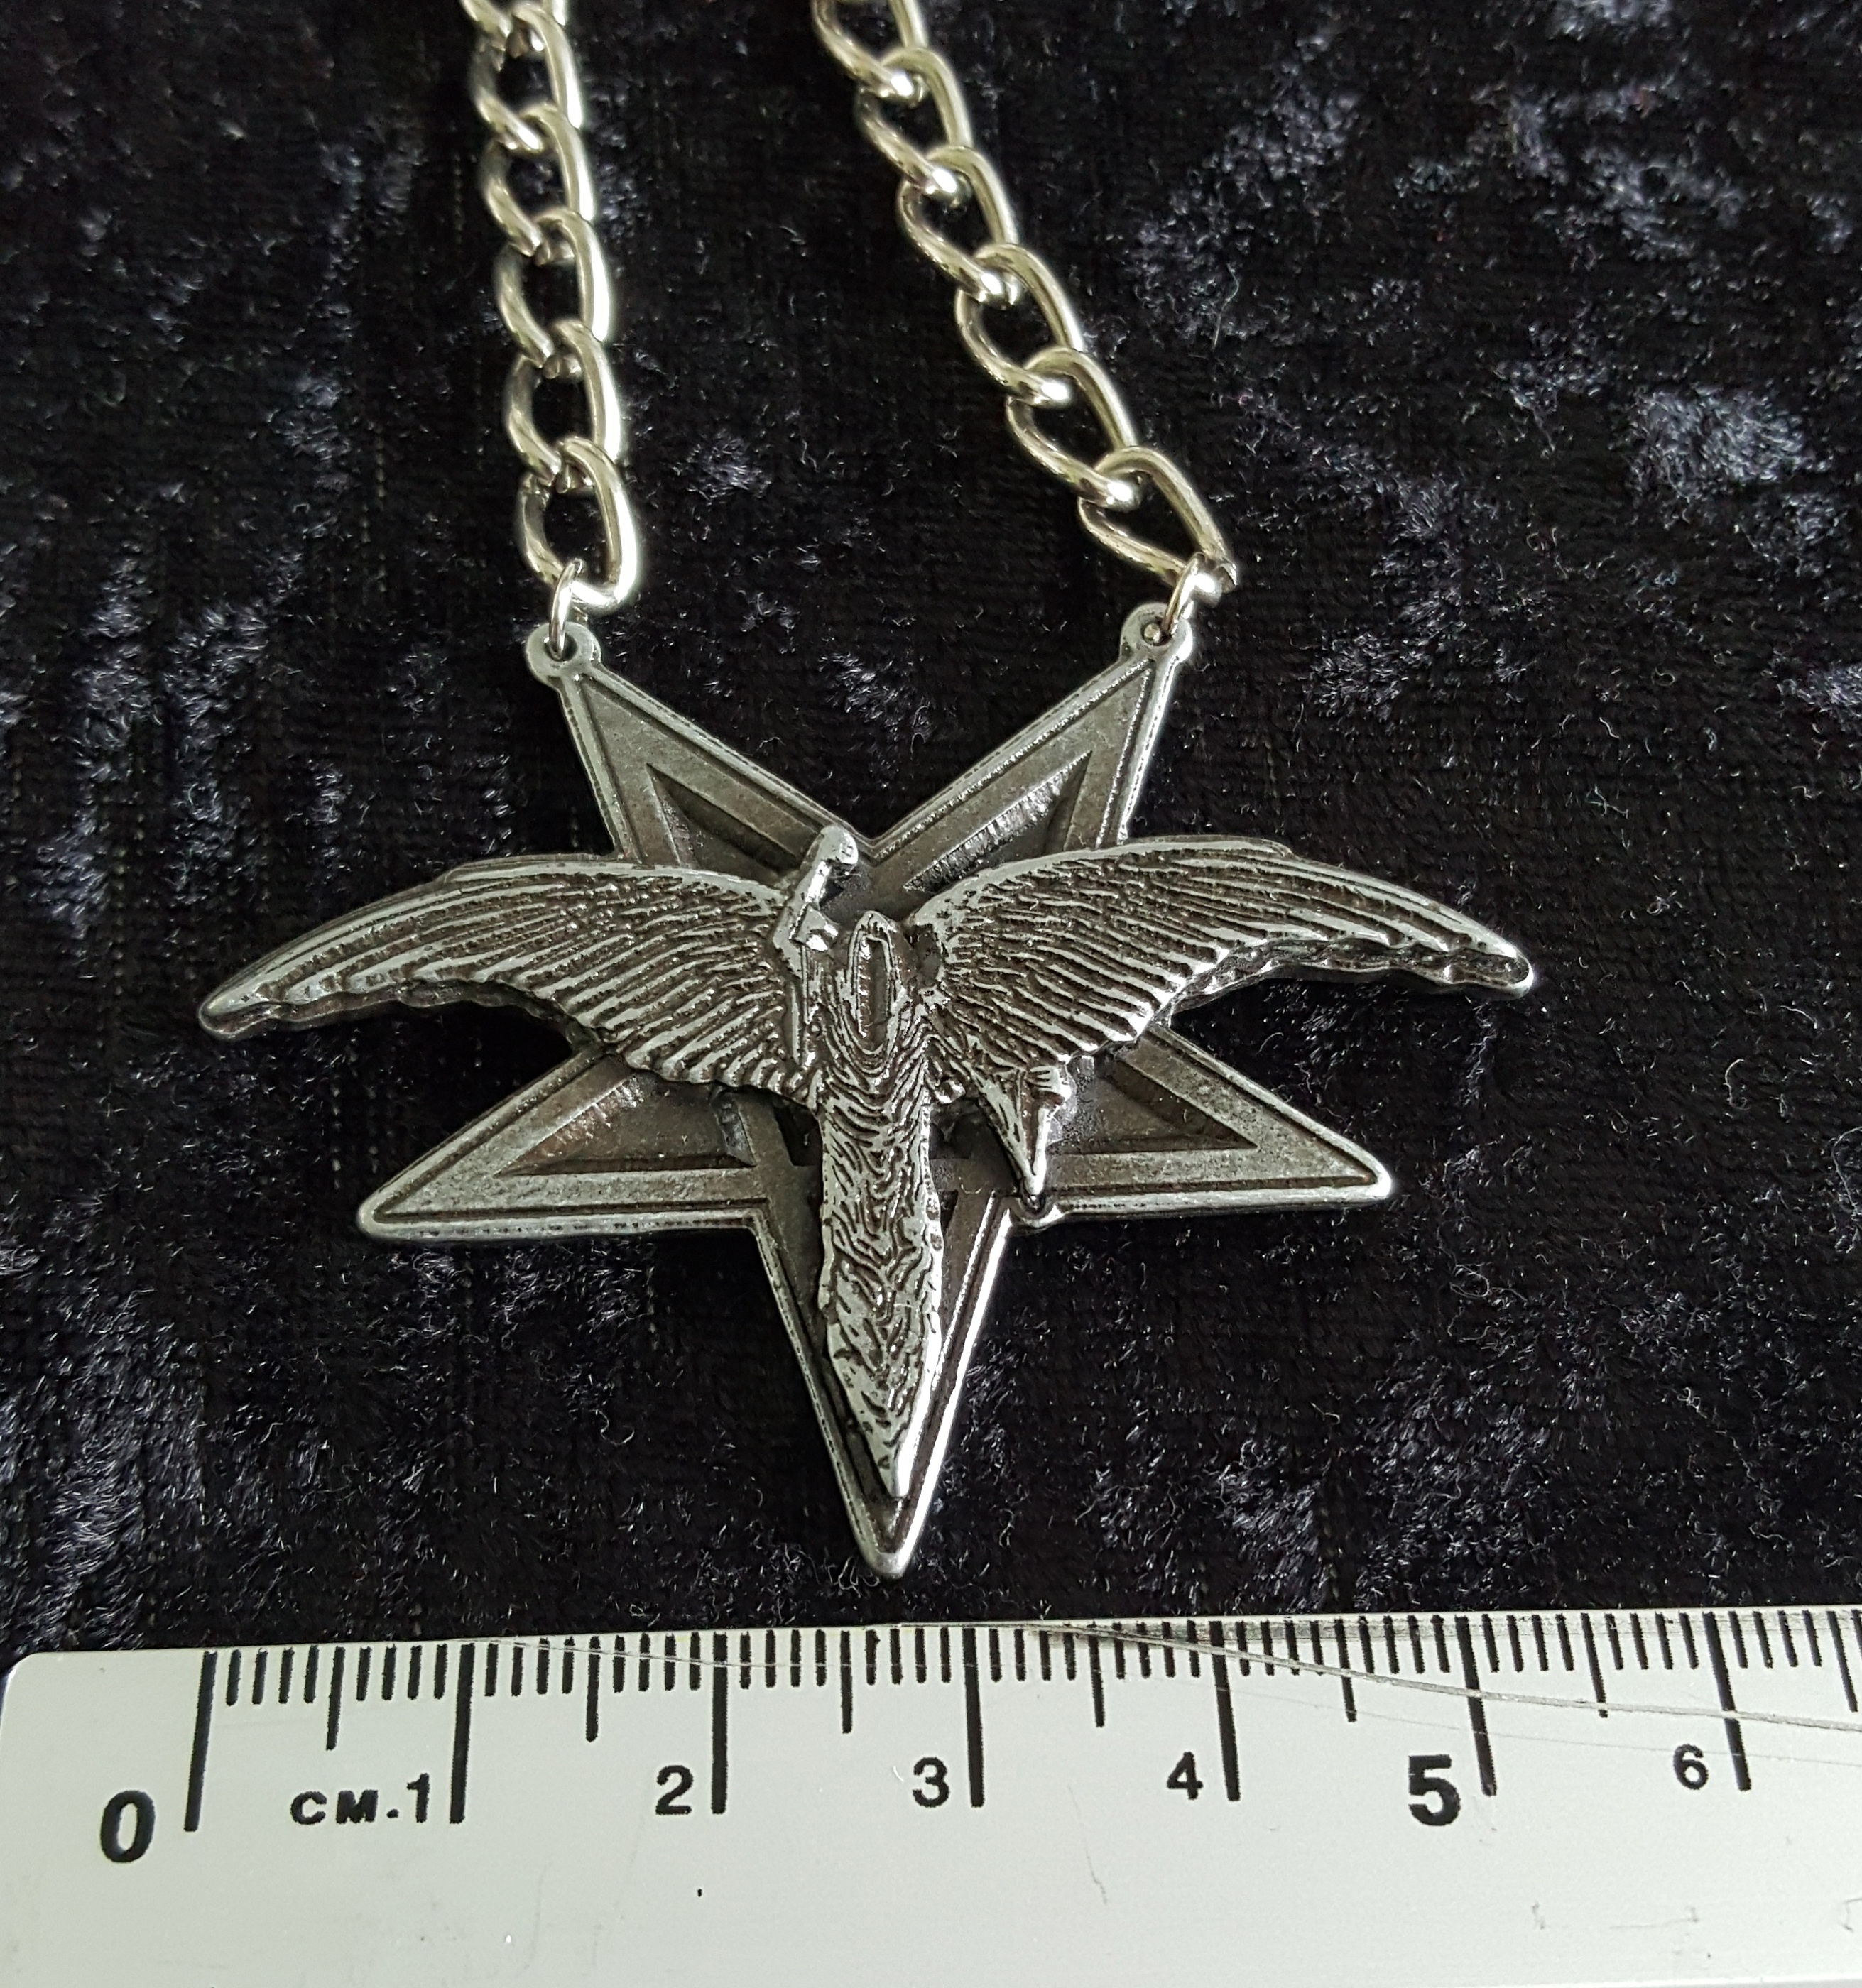 HETROERTZEN - Uprising of the Fallen - ltd. pendant